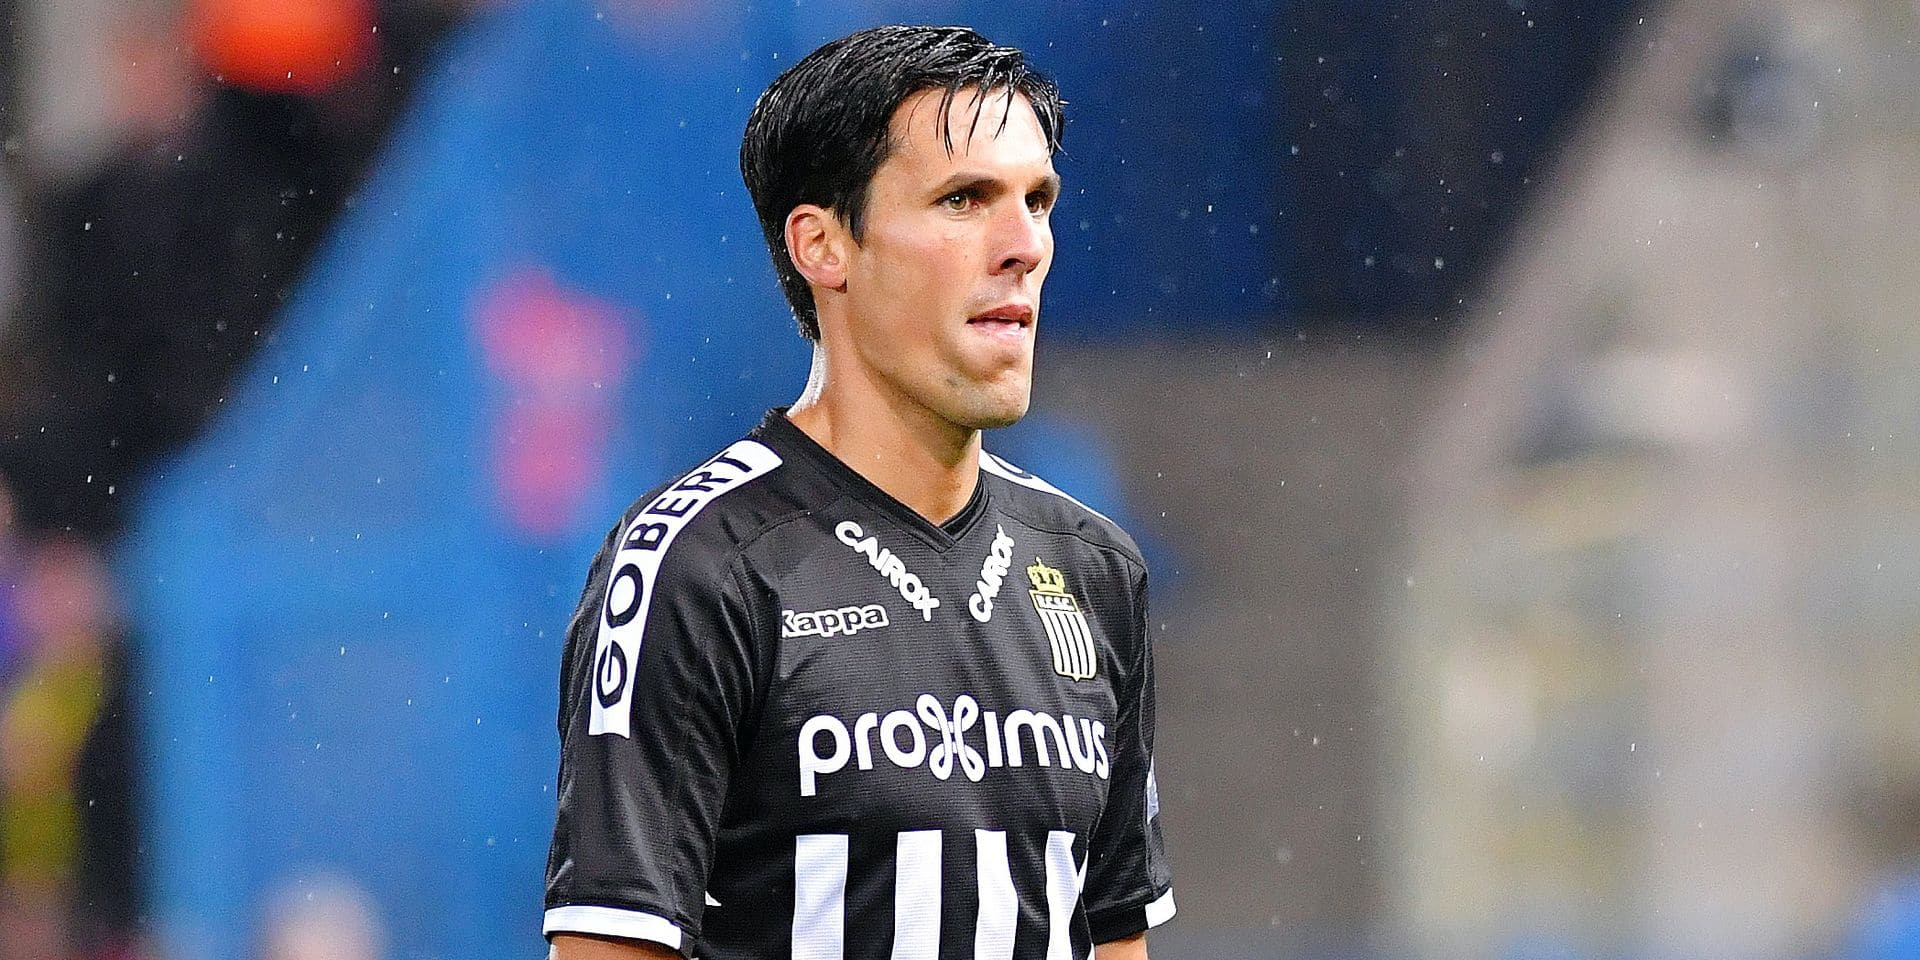 Charleroi's Jeremy Perbet leaves the field after receiving a red card during a soccer match between Waasland-Beveren and Sporting Charleroi, in Beveren, Saturday 22 September 2018, on the 8th day of the 'Jupiler Pro League' Belgian soccer championship season 2018-2019. BELGA PHOTO LUC CLAESSEN